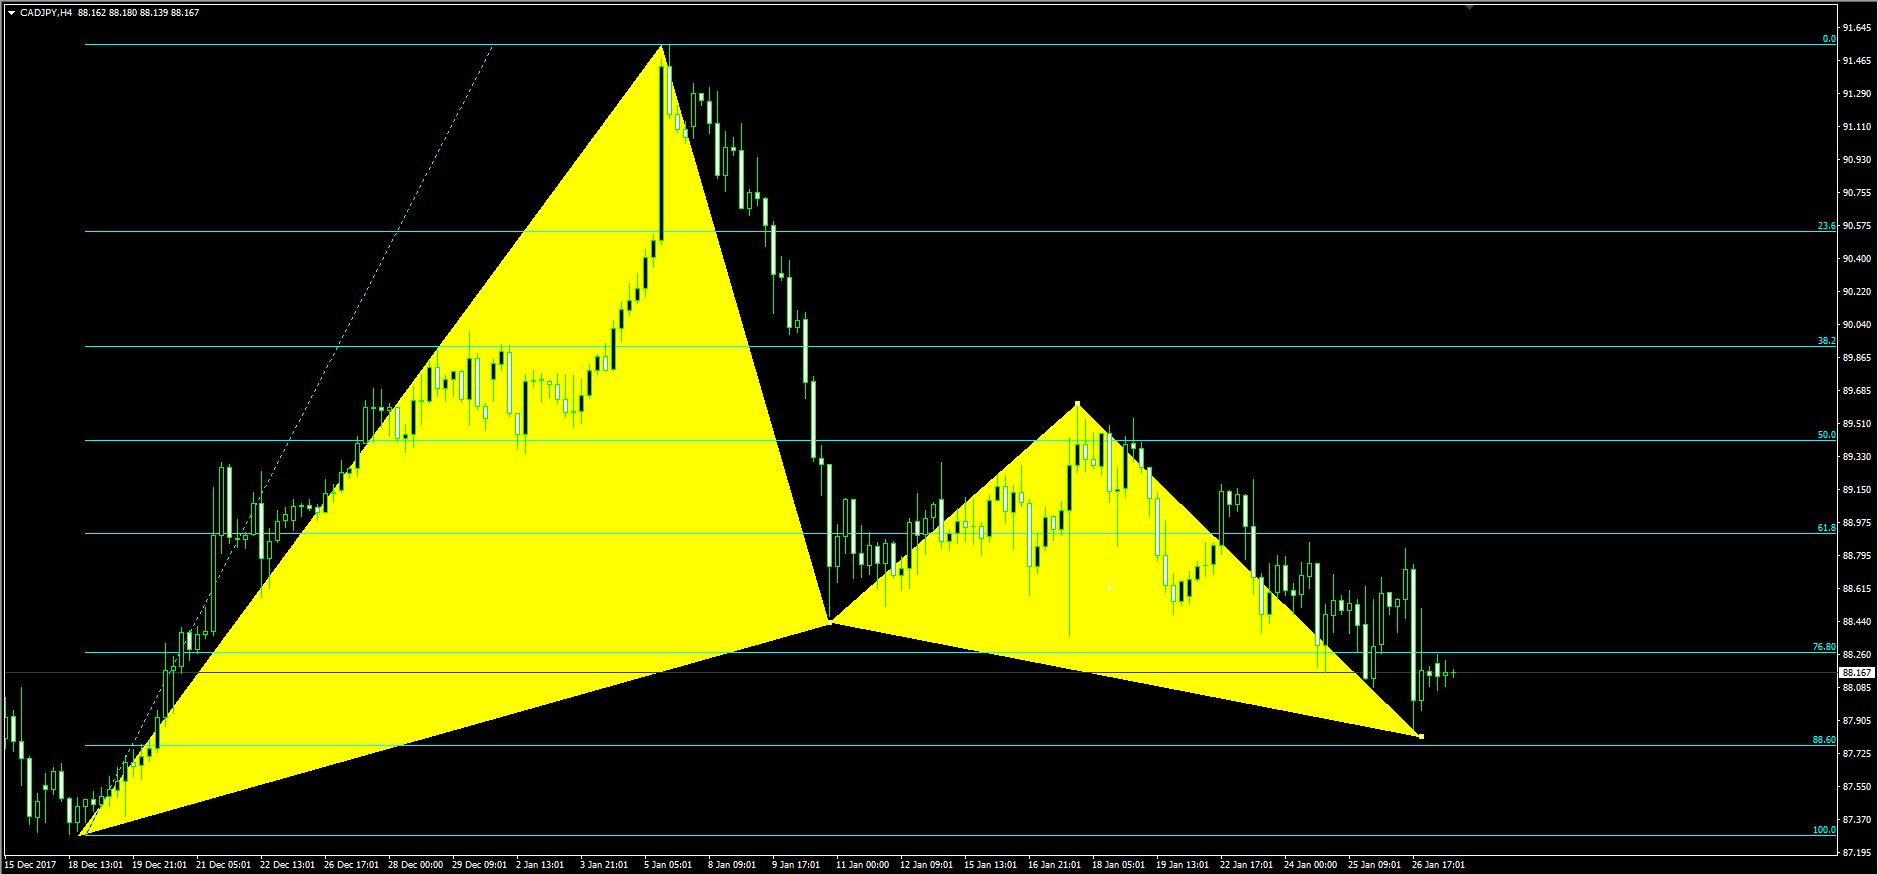 cadjpy-h4-chart.png